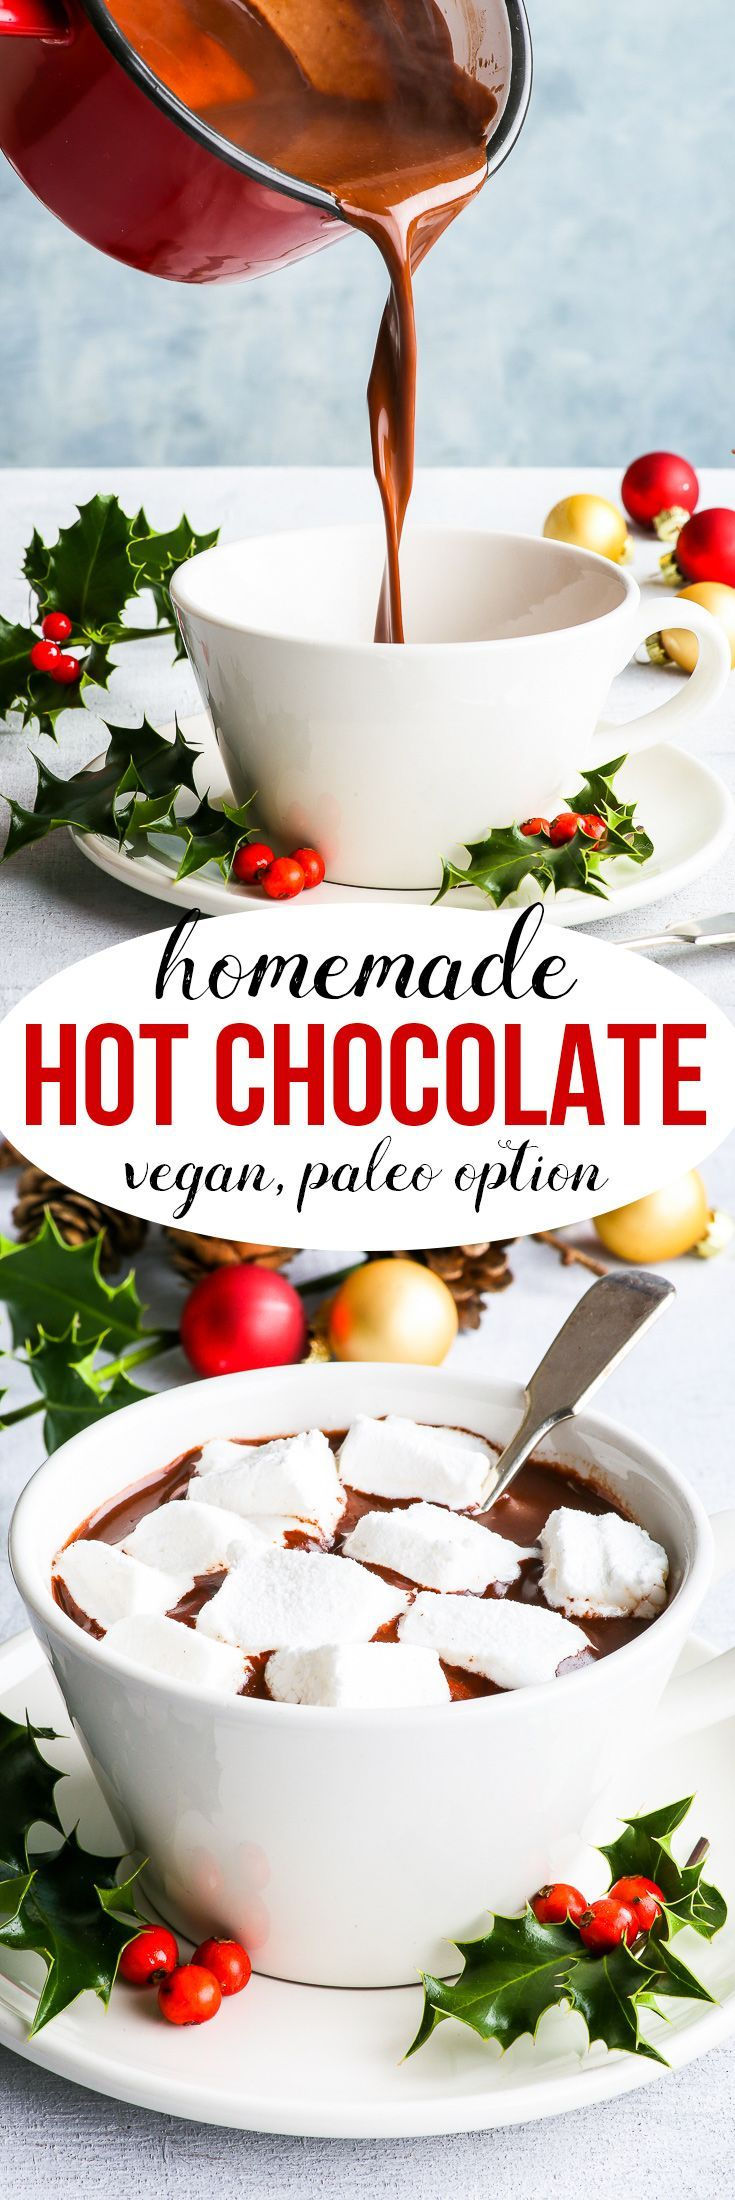 Homemade Hot Chocolate Mix {gluten, dairy, egg, nut & soy free, refined sugar free option, vegan, paleo option} - This homemade hot chocolate mix makes the most delicious, decadent, luscious hot chocolate. It's definitely a go-to on a cold, dreary day – after all, homemade hot chocolate is the ultimate comfort Christmas drink.